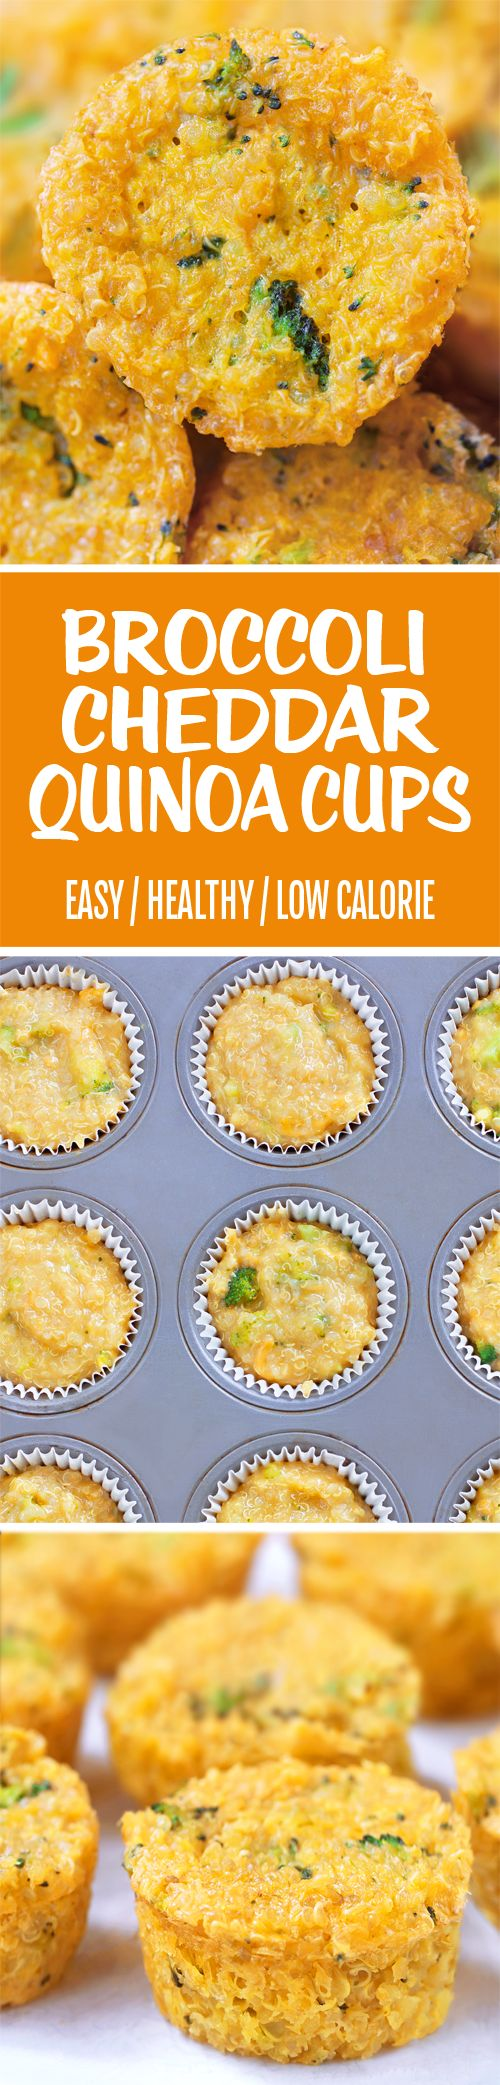 Addictive & cheesy broccoli quinoa bites that are a super healthy snack for both kids and adults. http://healthyquickly.com/7-healthy-snacks-for-weightloss-easy-delicious/